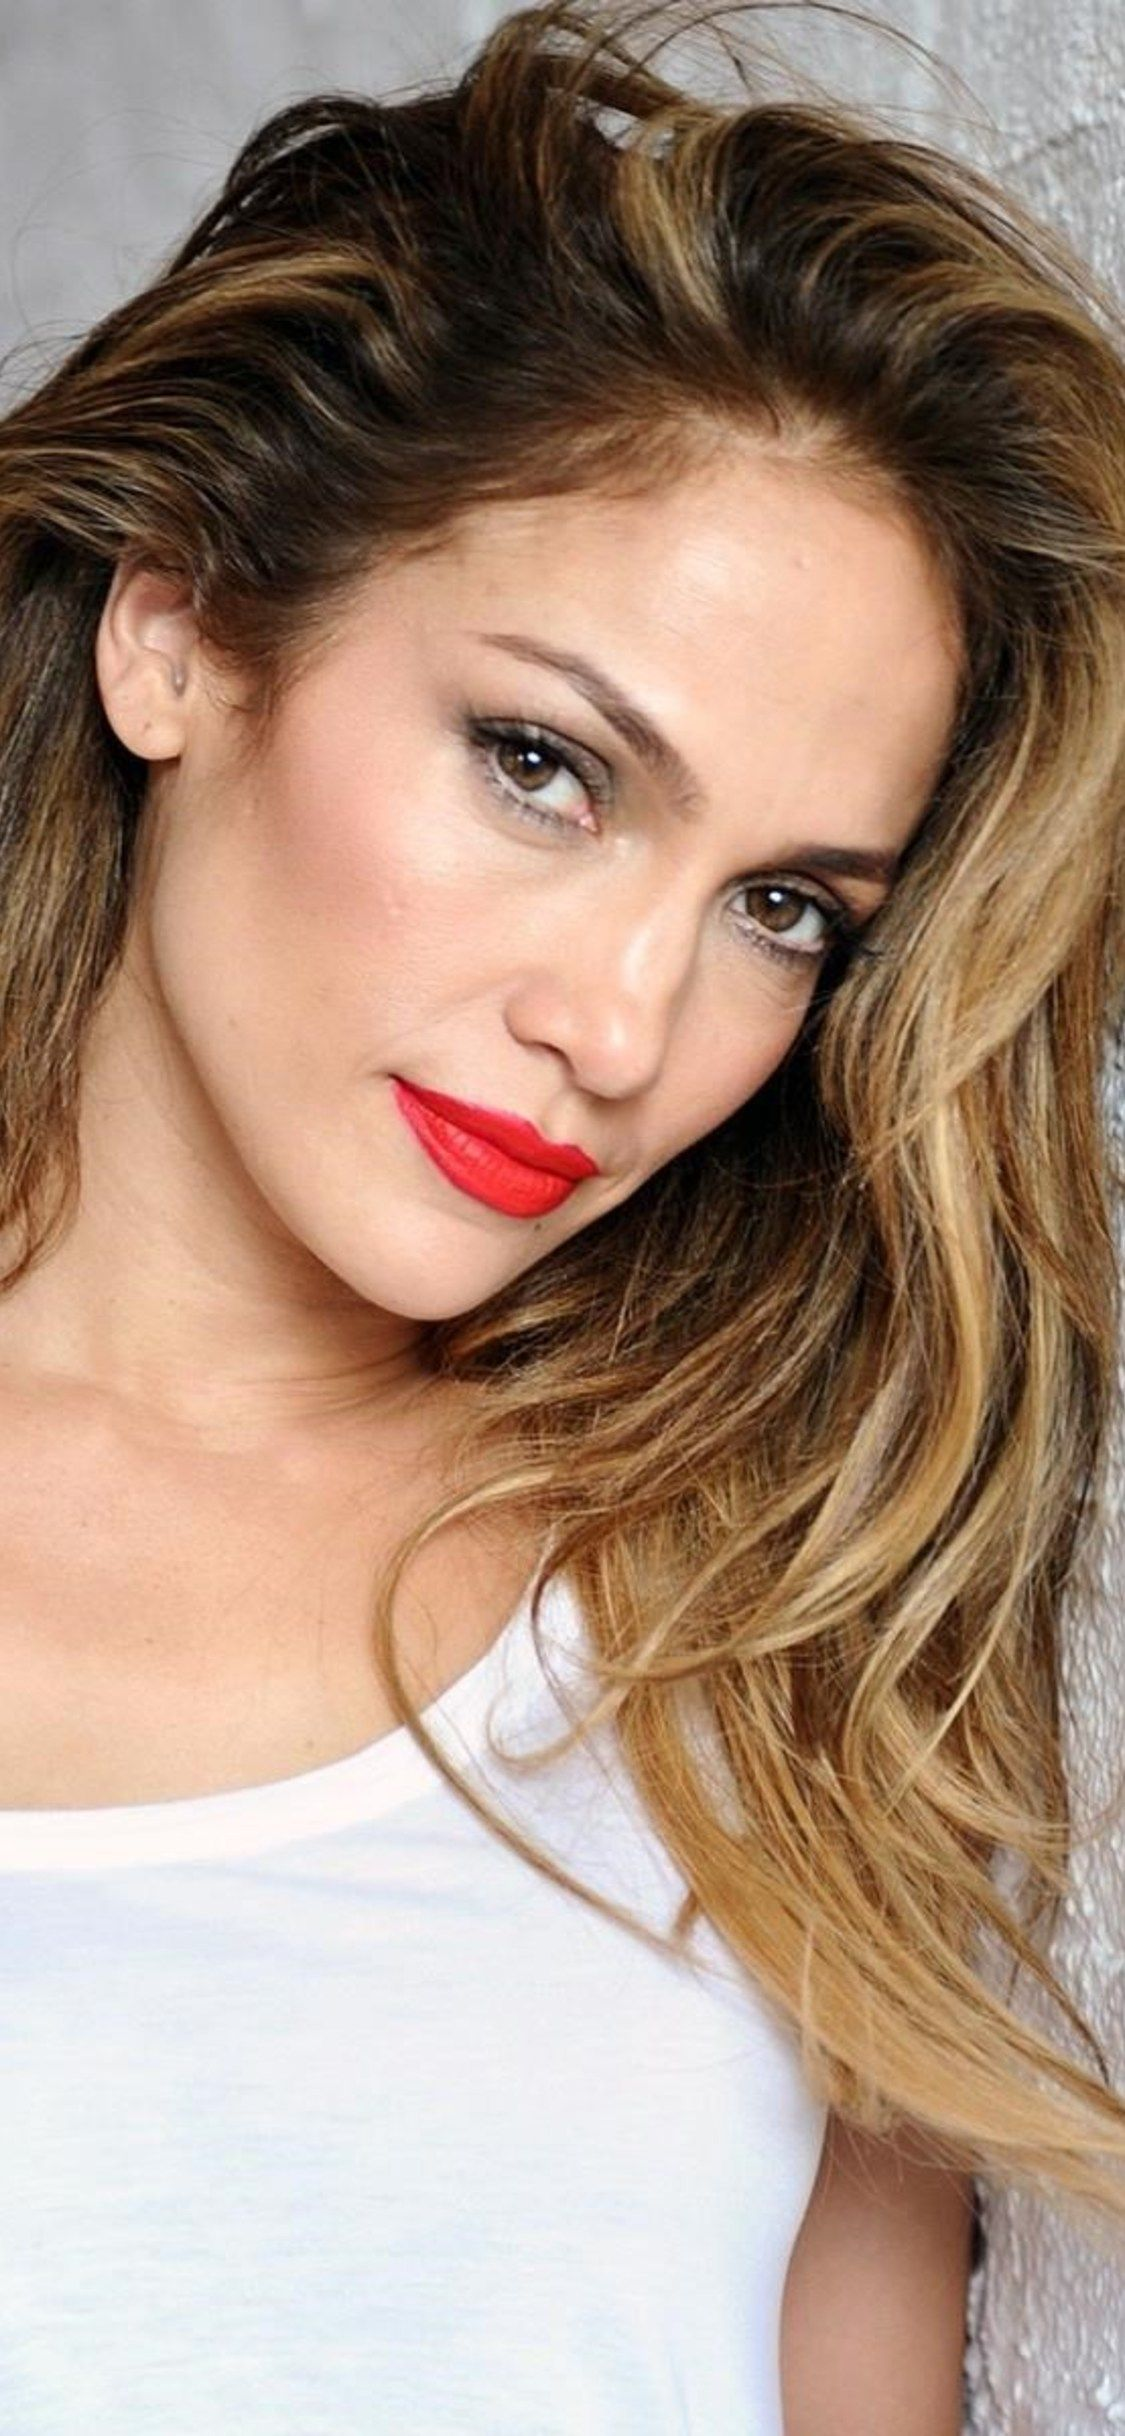 1125x2436 Jennifer Lopez Singer Iphone Xs Iphone 10 Iphone X Hd 4k Wallpapers Images Backgrounds Photos And Pictures Jennifer Lopez Singer Jennifer